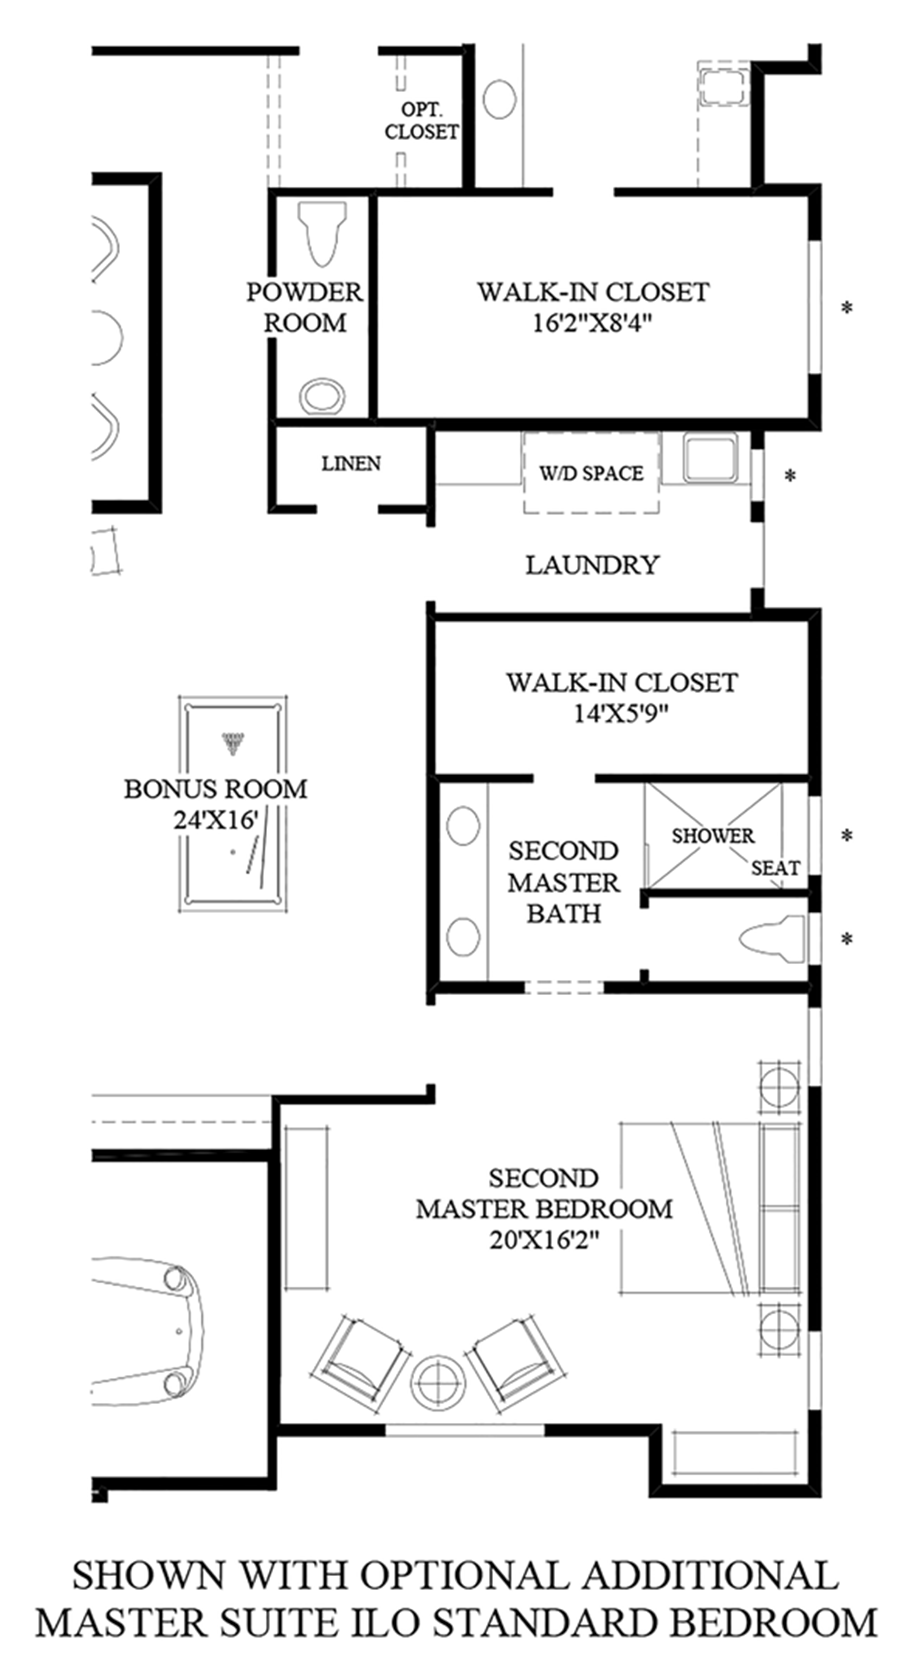 Optional Additional Master Suite ILO Standard Bedroom Floor Plan